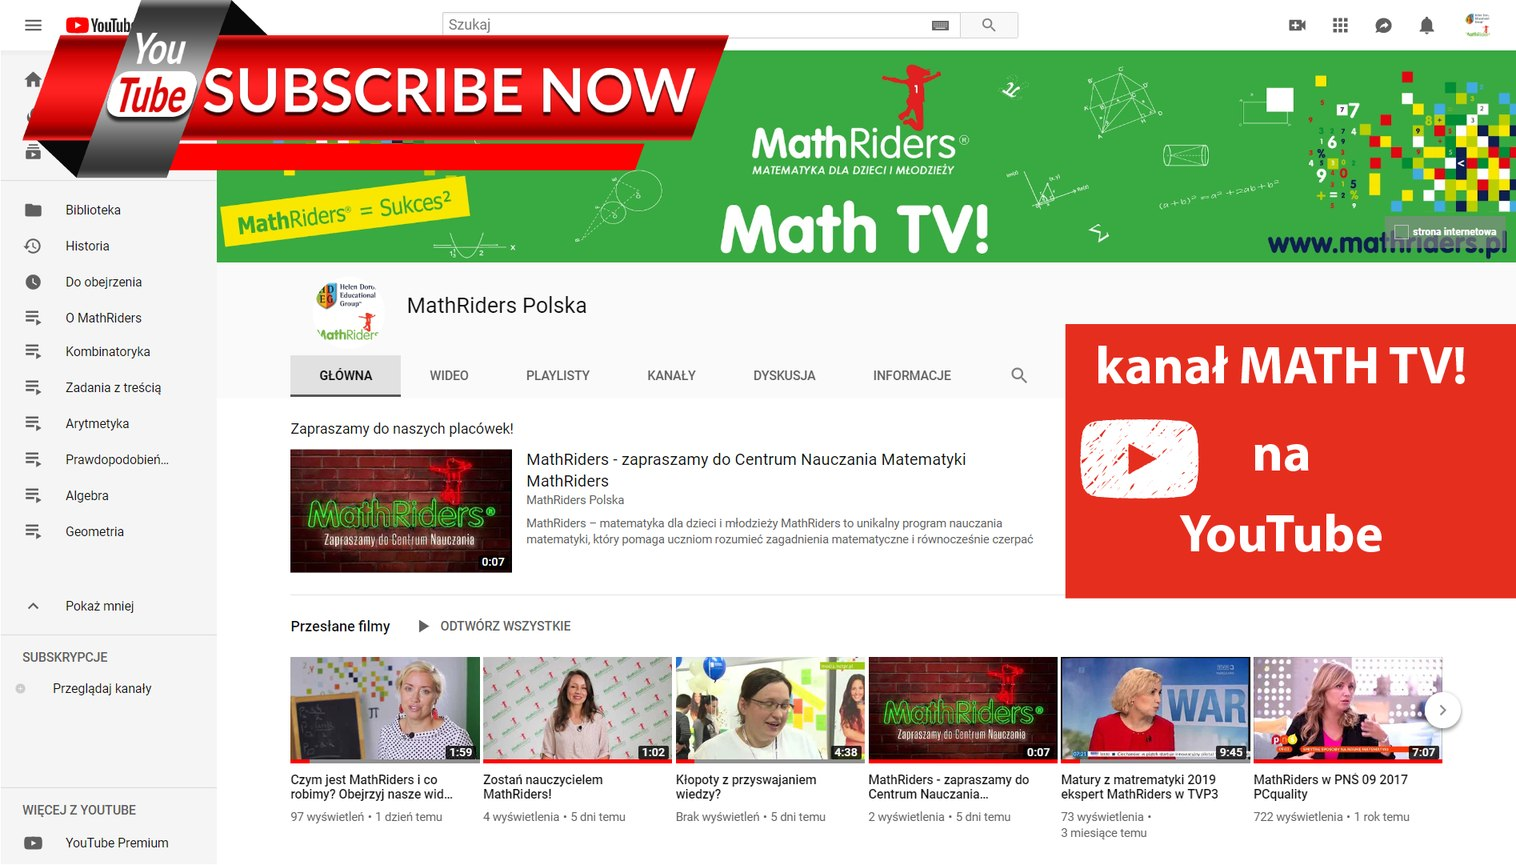 MathRiders Math TV! kanał na YouTube